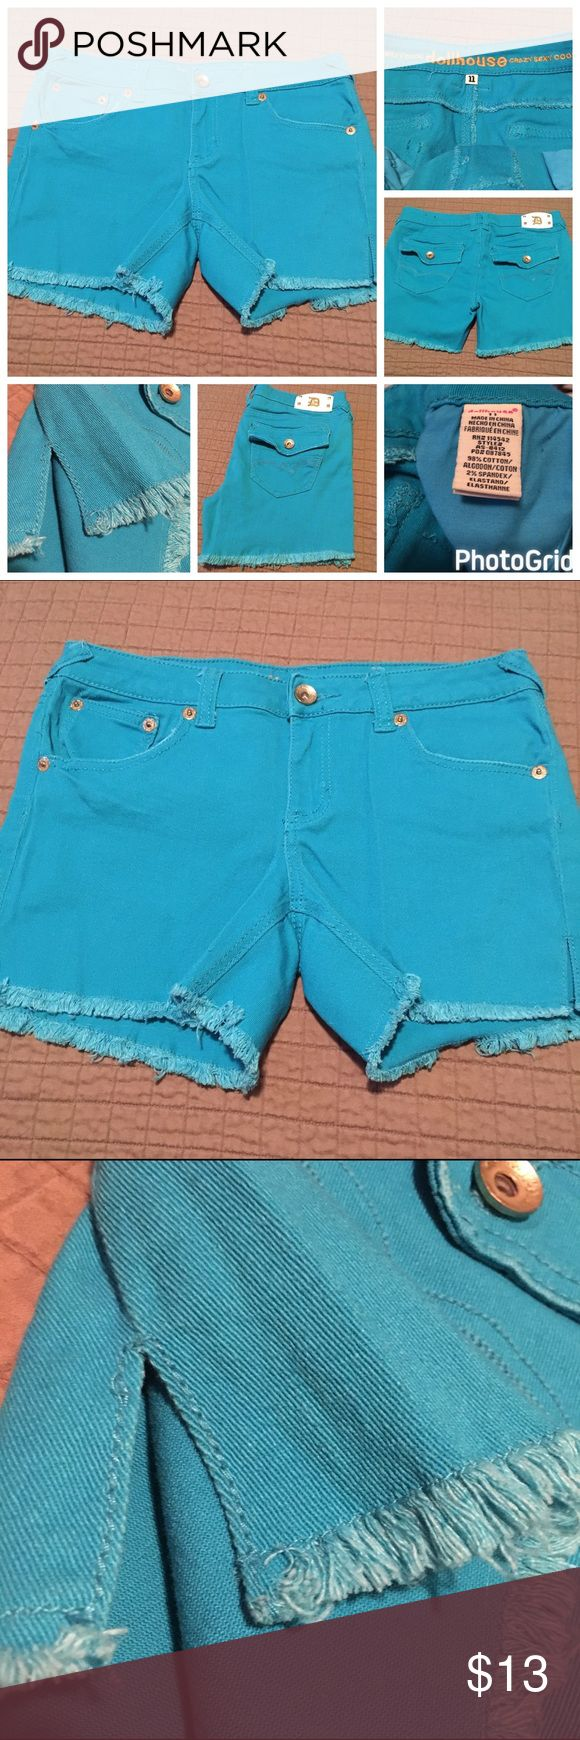 """Dollhouse Cutoff Jean Shorts NWOT SZ 11 Turquoise Dollhouse Cutoff Jean Shorts NWOT SZ 11 in Turquoise. Waist measures approximately 17"""" unstretched up  to approximately 18 1/2"""". Inseam is 4"""" & a rise of approximately 8 1/2"""". Back flap pockets, factory frayed hems & small side slits on legs. Never worn or washed!! Dollhouse Shorts Jean Shorts"""